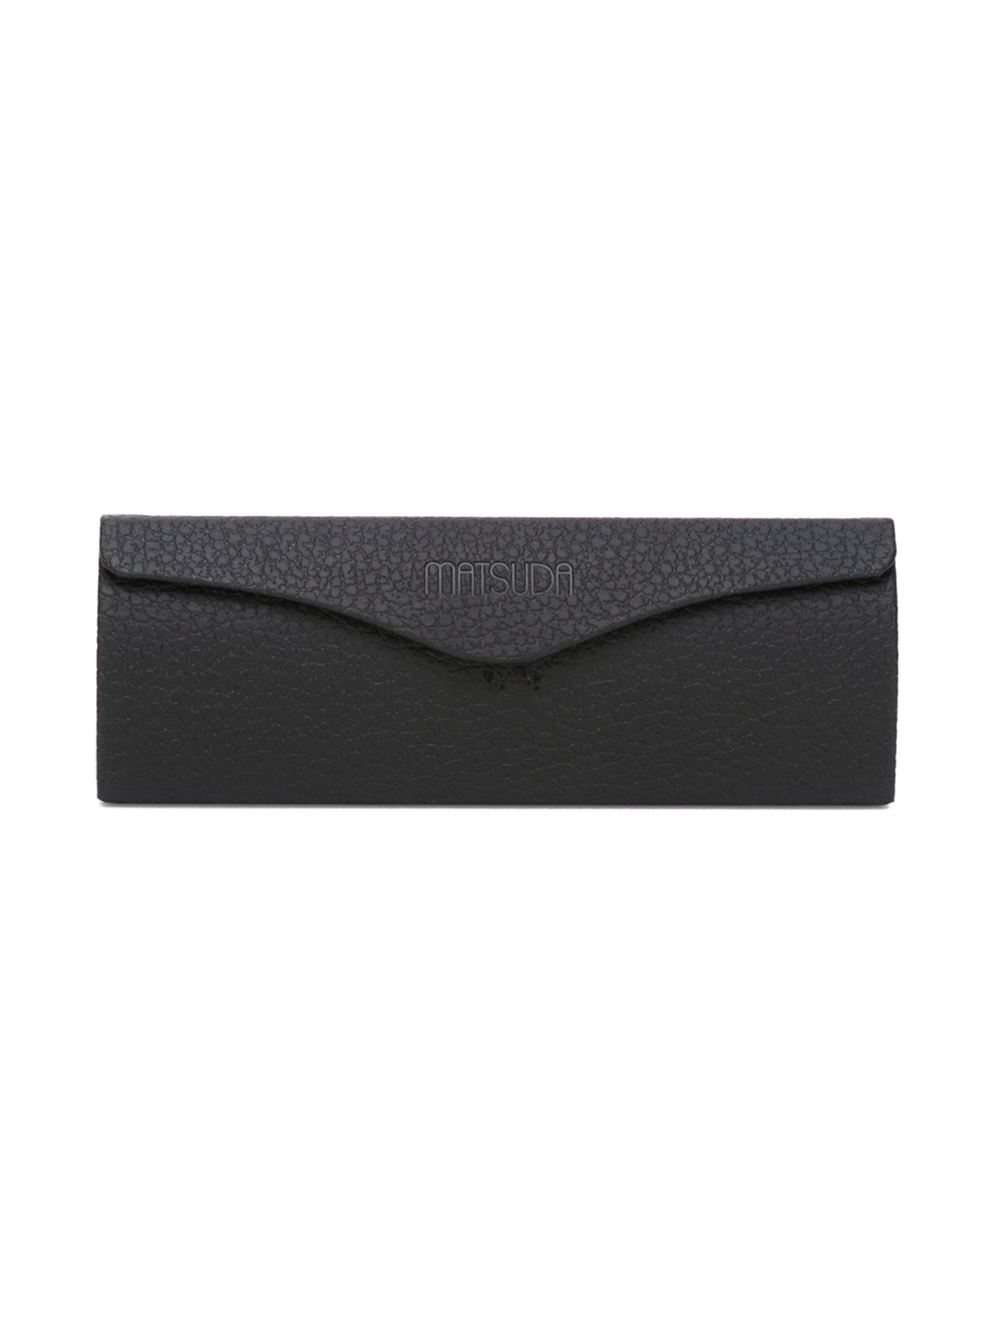 Matsuda-funda-piel-leather-case-exclusive-opticacliment